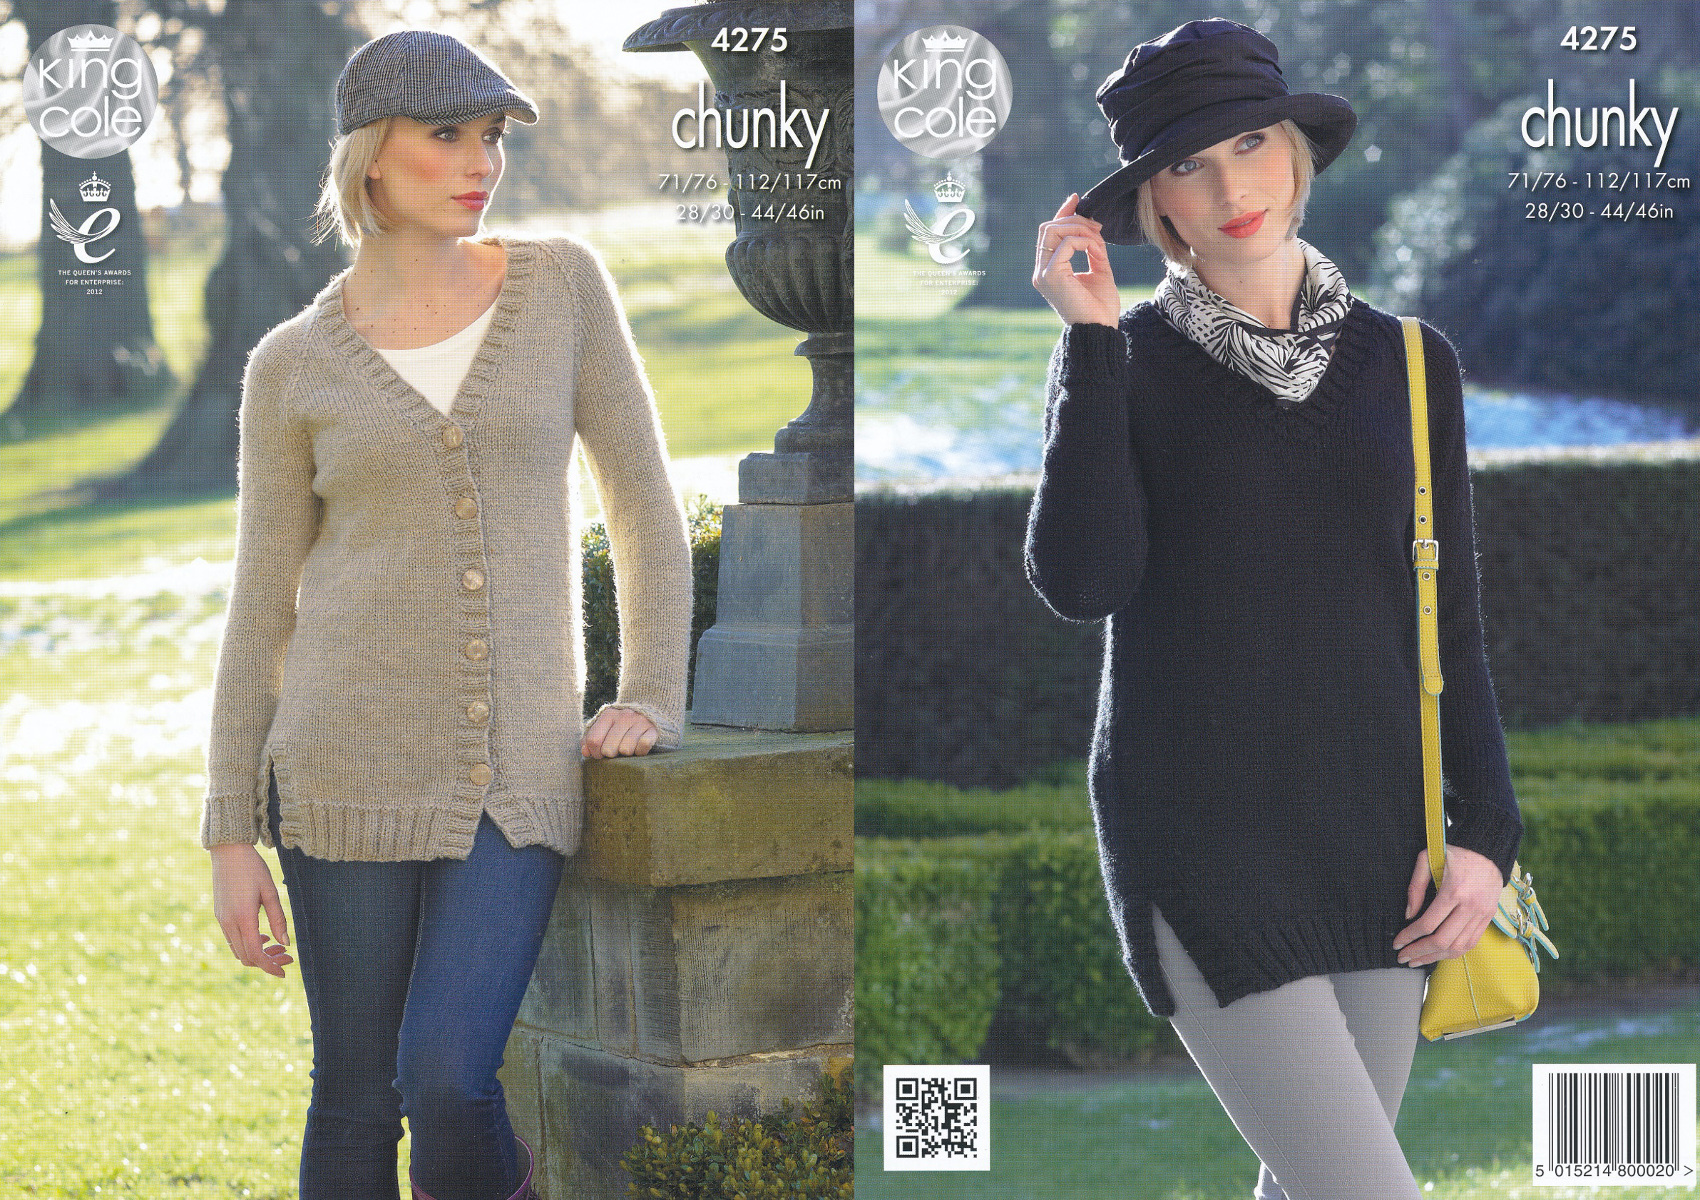 King cole ladies magnum chunky knitting pattern v neck cardigan king cole ladies magnum chunky knitting pattern v neck cardigan sweater 4275 bankloansurffo Gallery